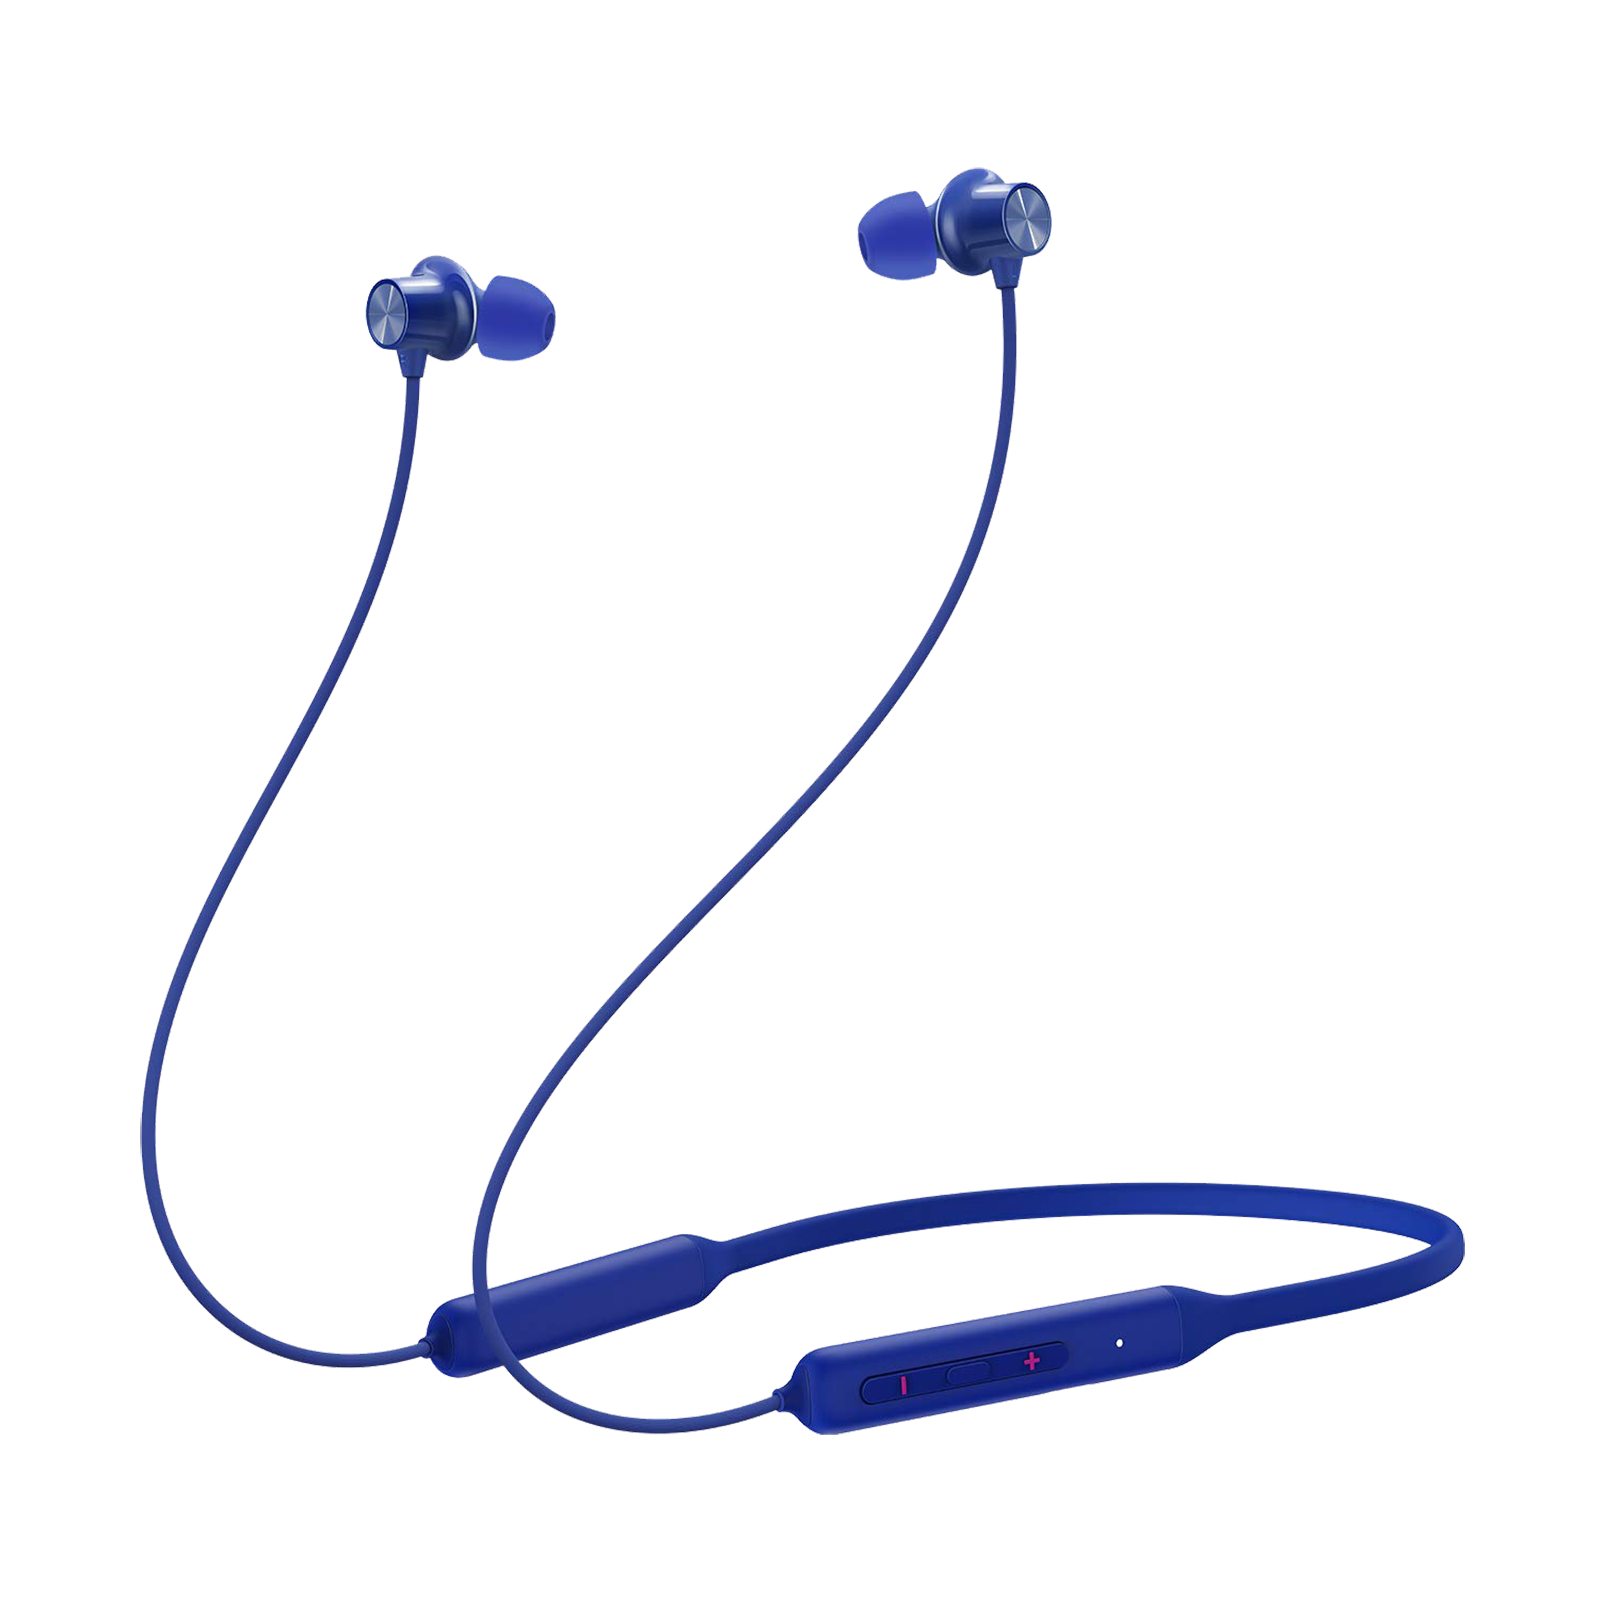 OnePlus Bullets Wireless Z Bass Edition In-Ear Passive Noise Cancellation Wireless Earphone with Mic (Bluetooth 5.0, Warp Charge, 5481100055, Bass Blue)